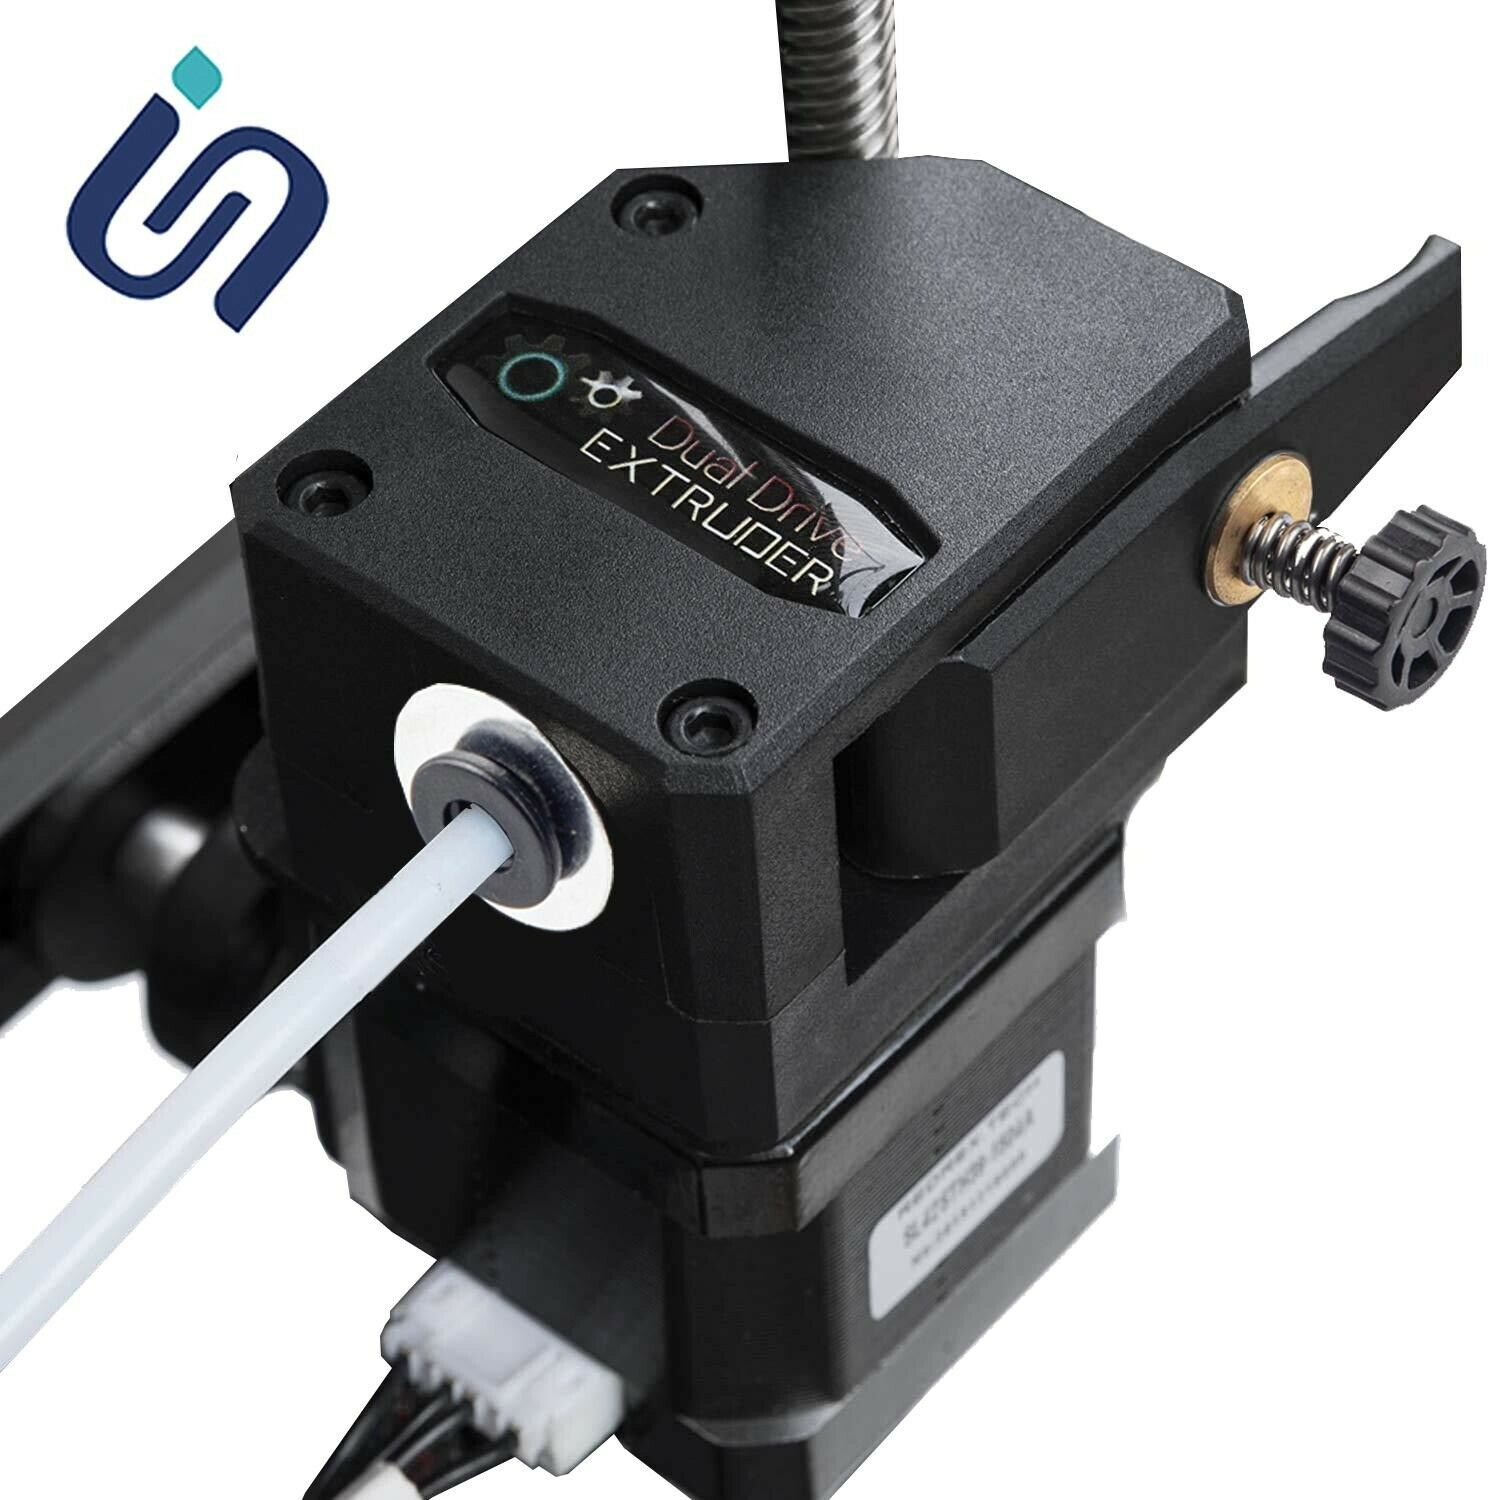 Upgrade Dual Drive Bowden Direct BMG Extruder for CR10 Ender 3 TEVO MK8 3D Print